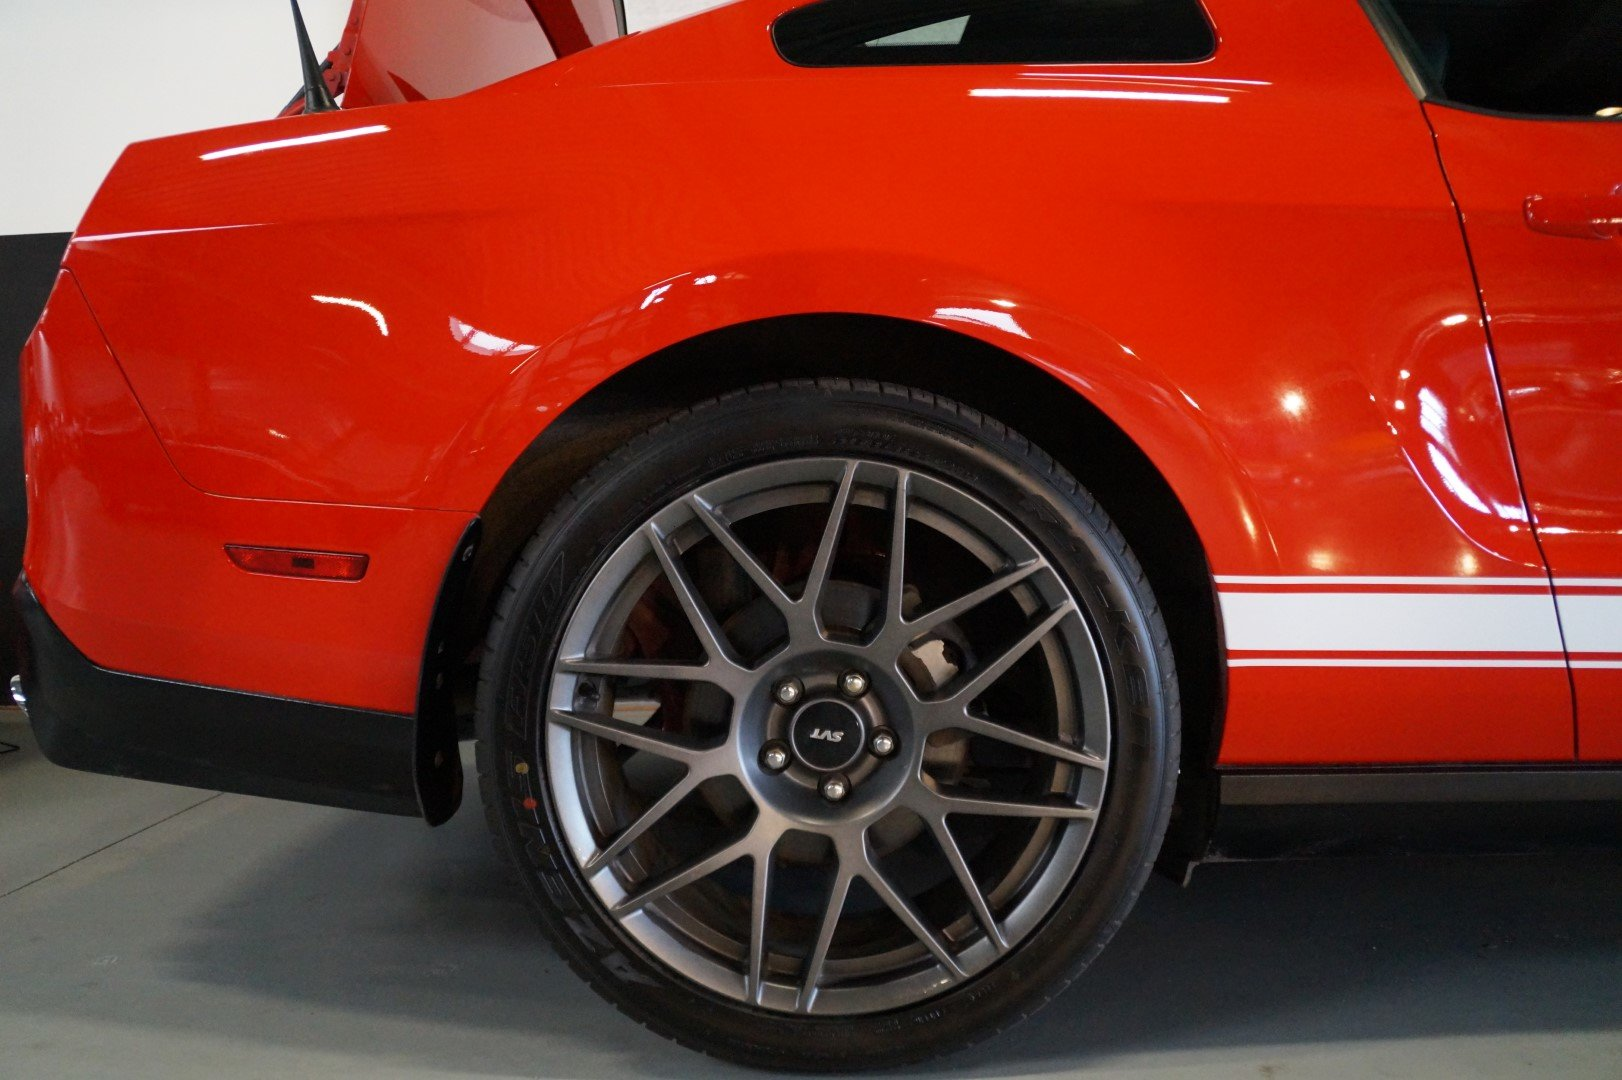 FORD MUSTANG Shelby GT500 SVT Performance Package (2011) For Sale (picture 6 of 6)